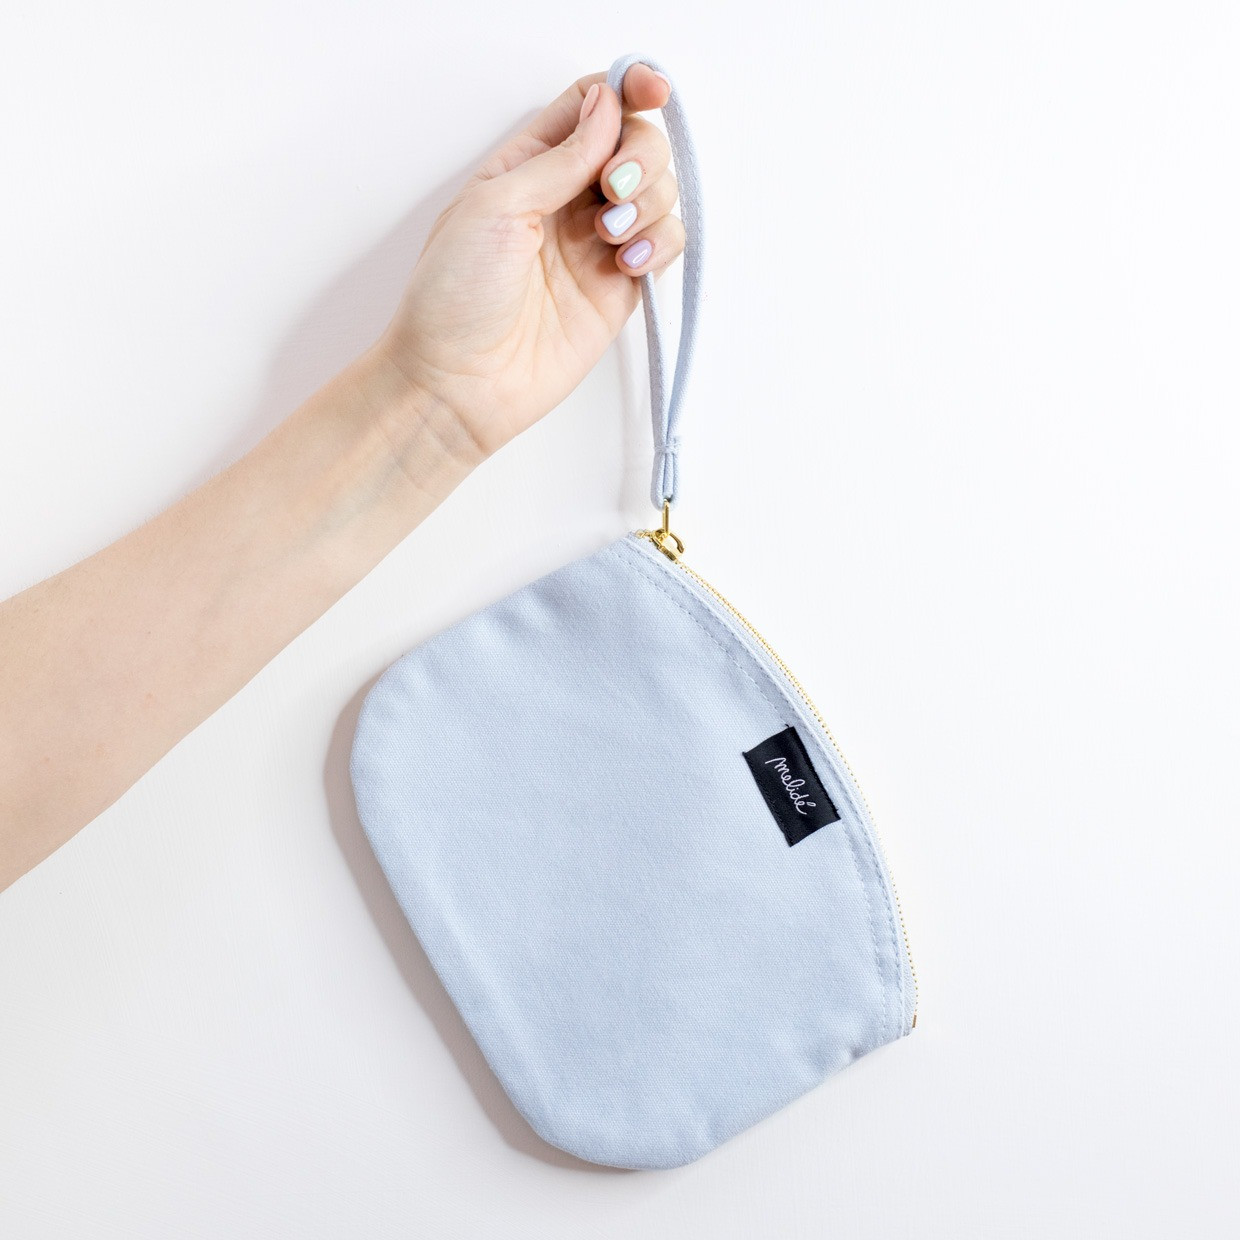 The ZIPPED POUCH M - Ariete